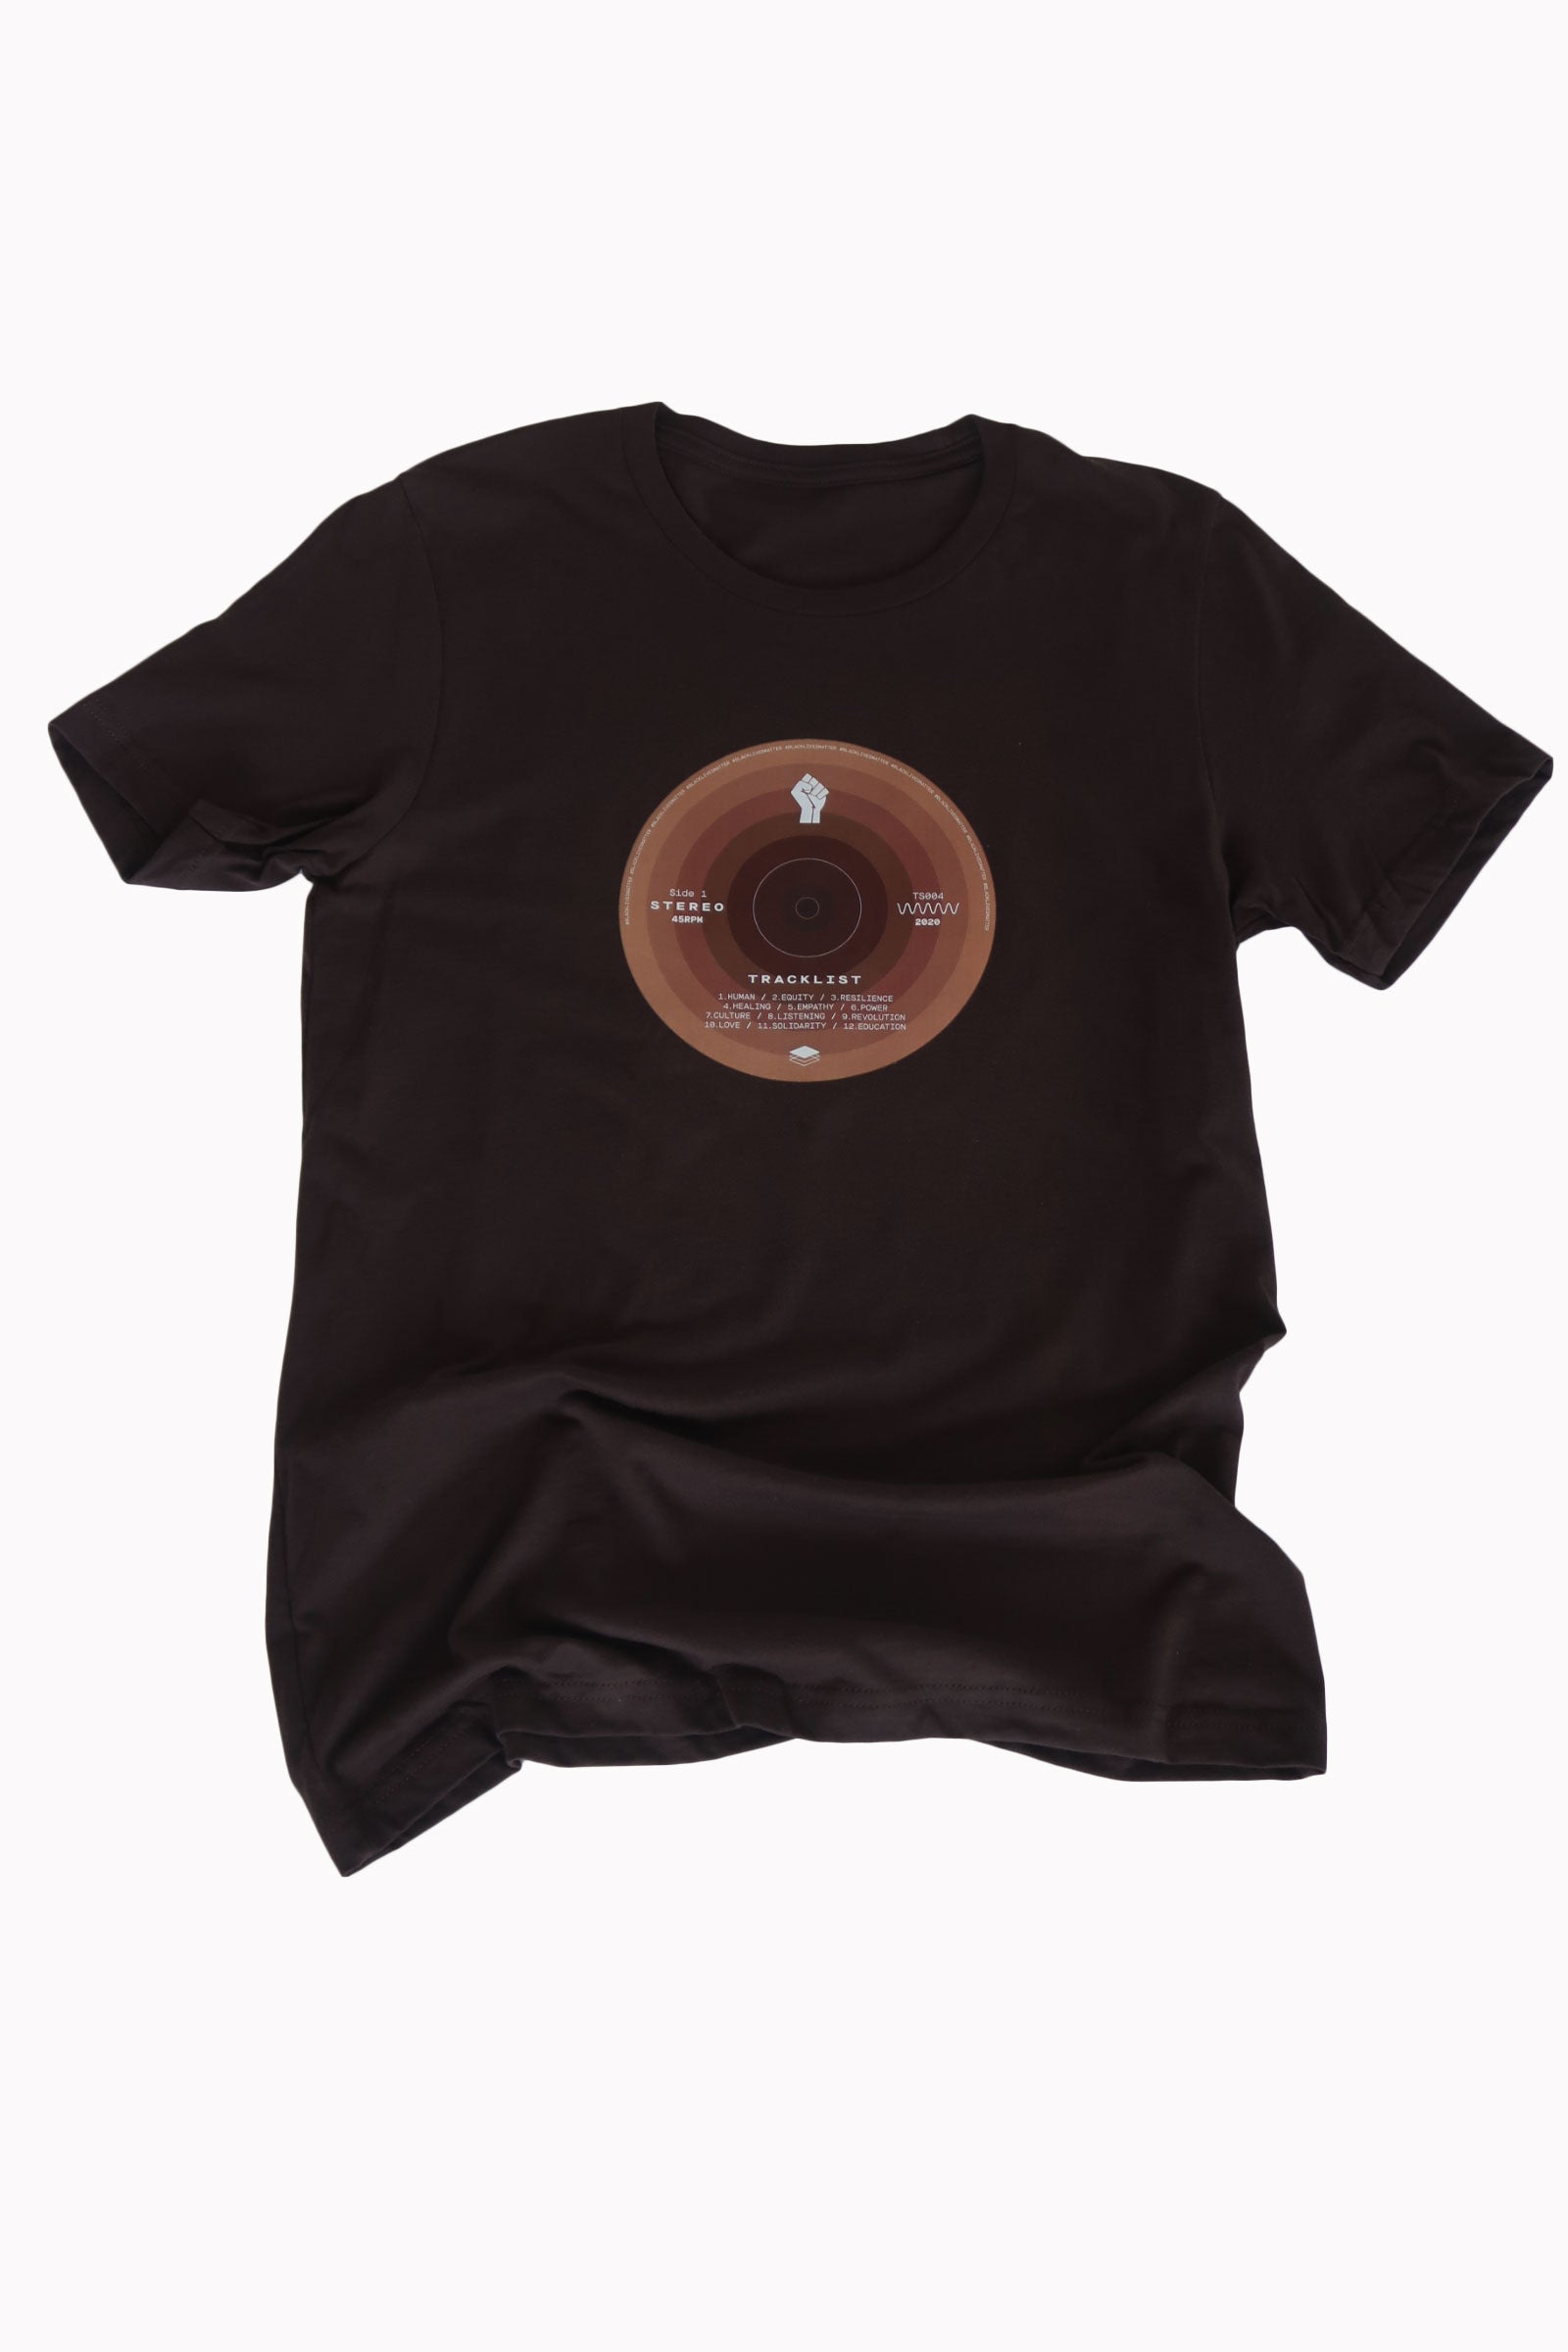 BLM Record Shirt in Brown - Trunk Series